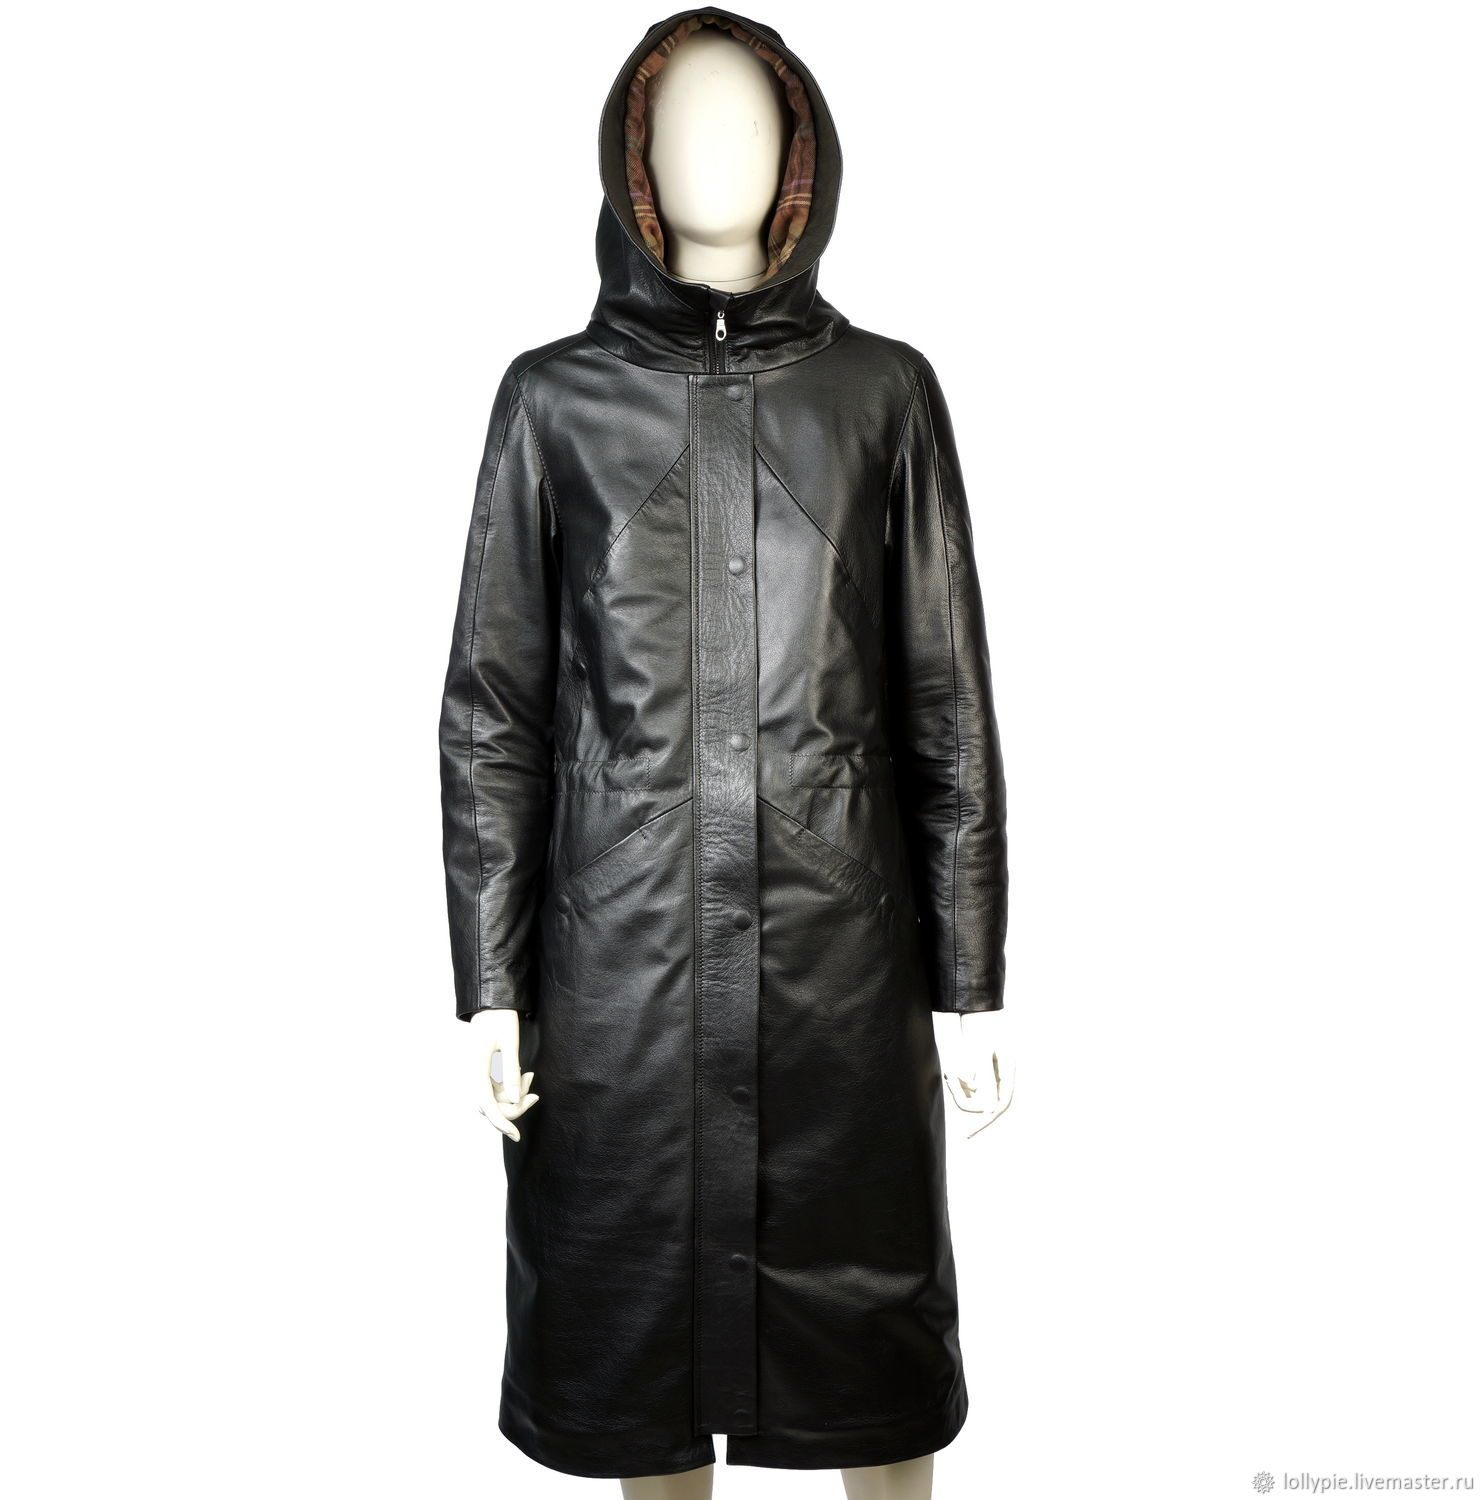 Genuine leather women's long coat, Coats, Moscow,  Фото №1